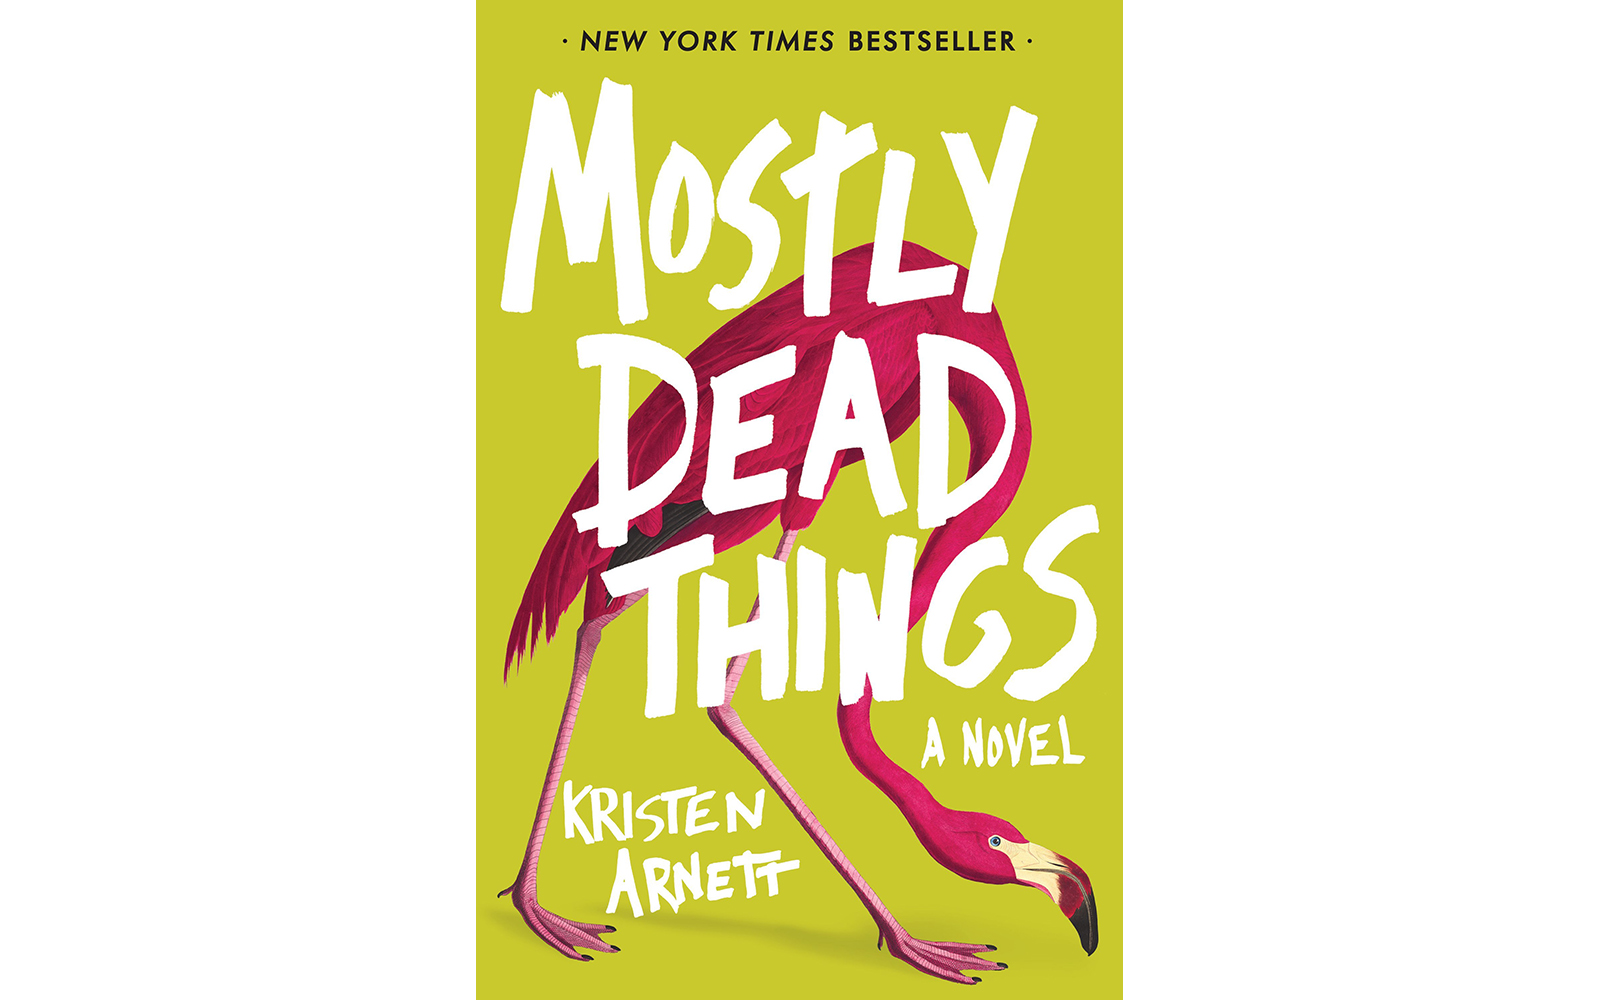 Cover of Mostly Dead Things, by Kristen Arnett